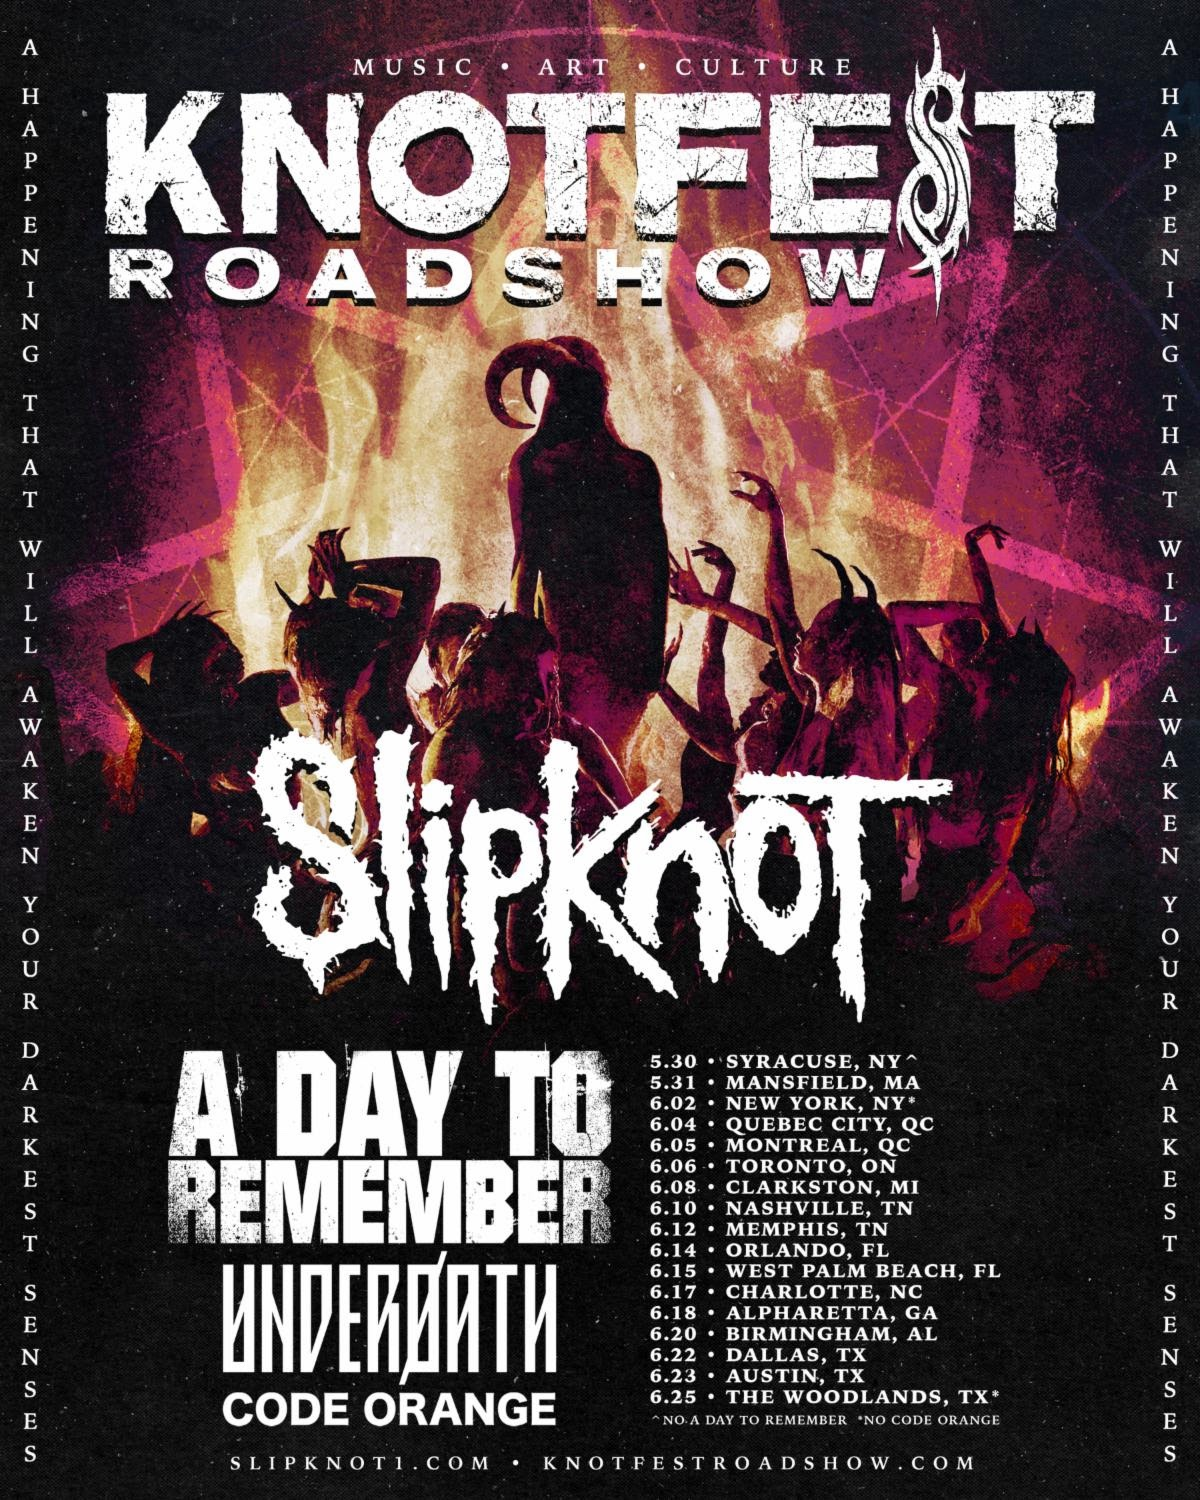 Knotfest Roadshow 2020 Poster